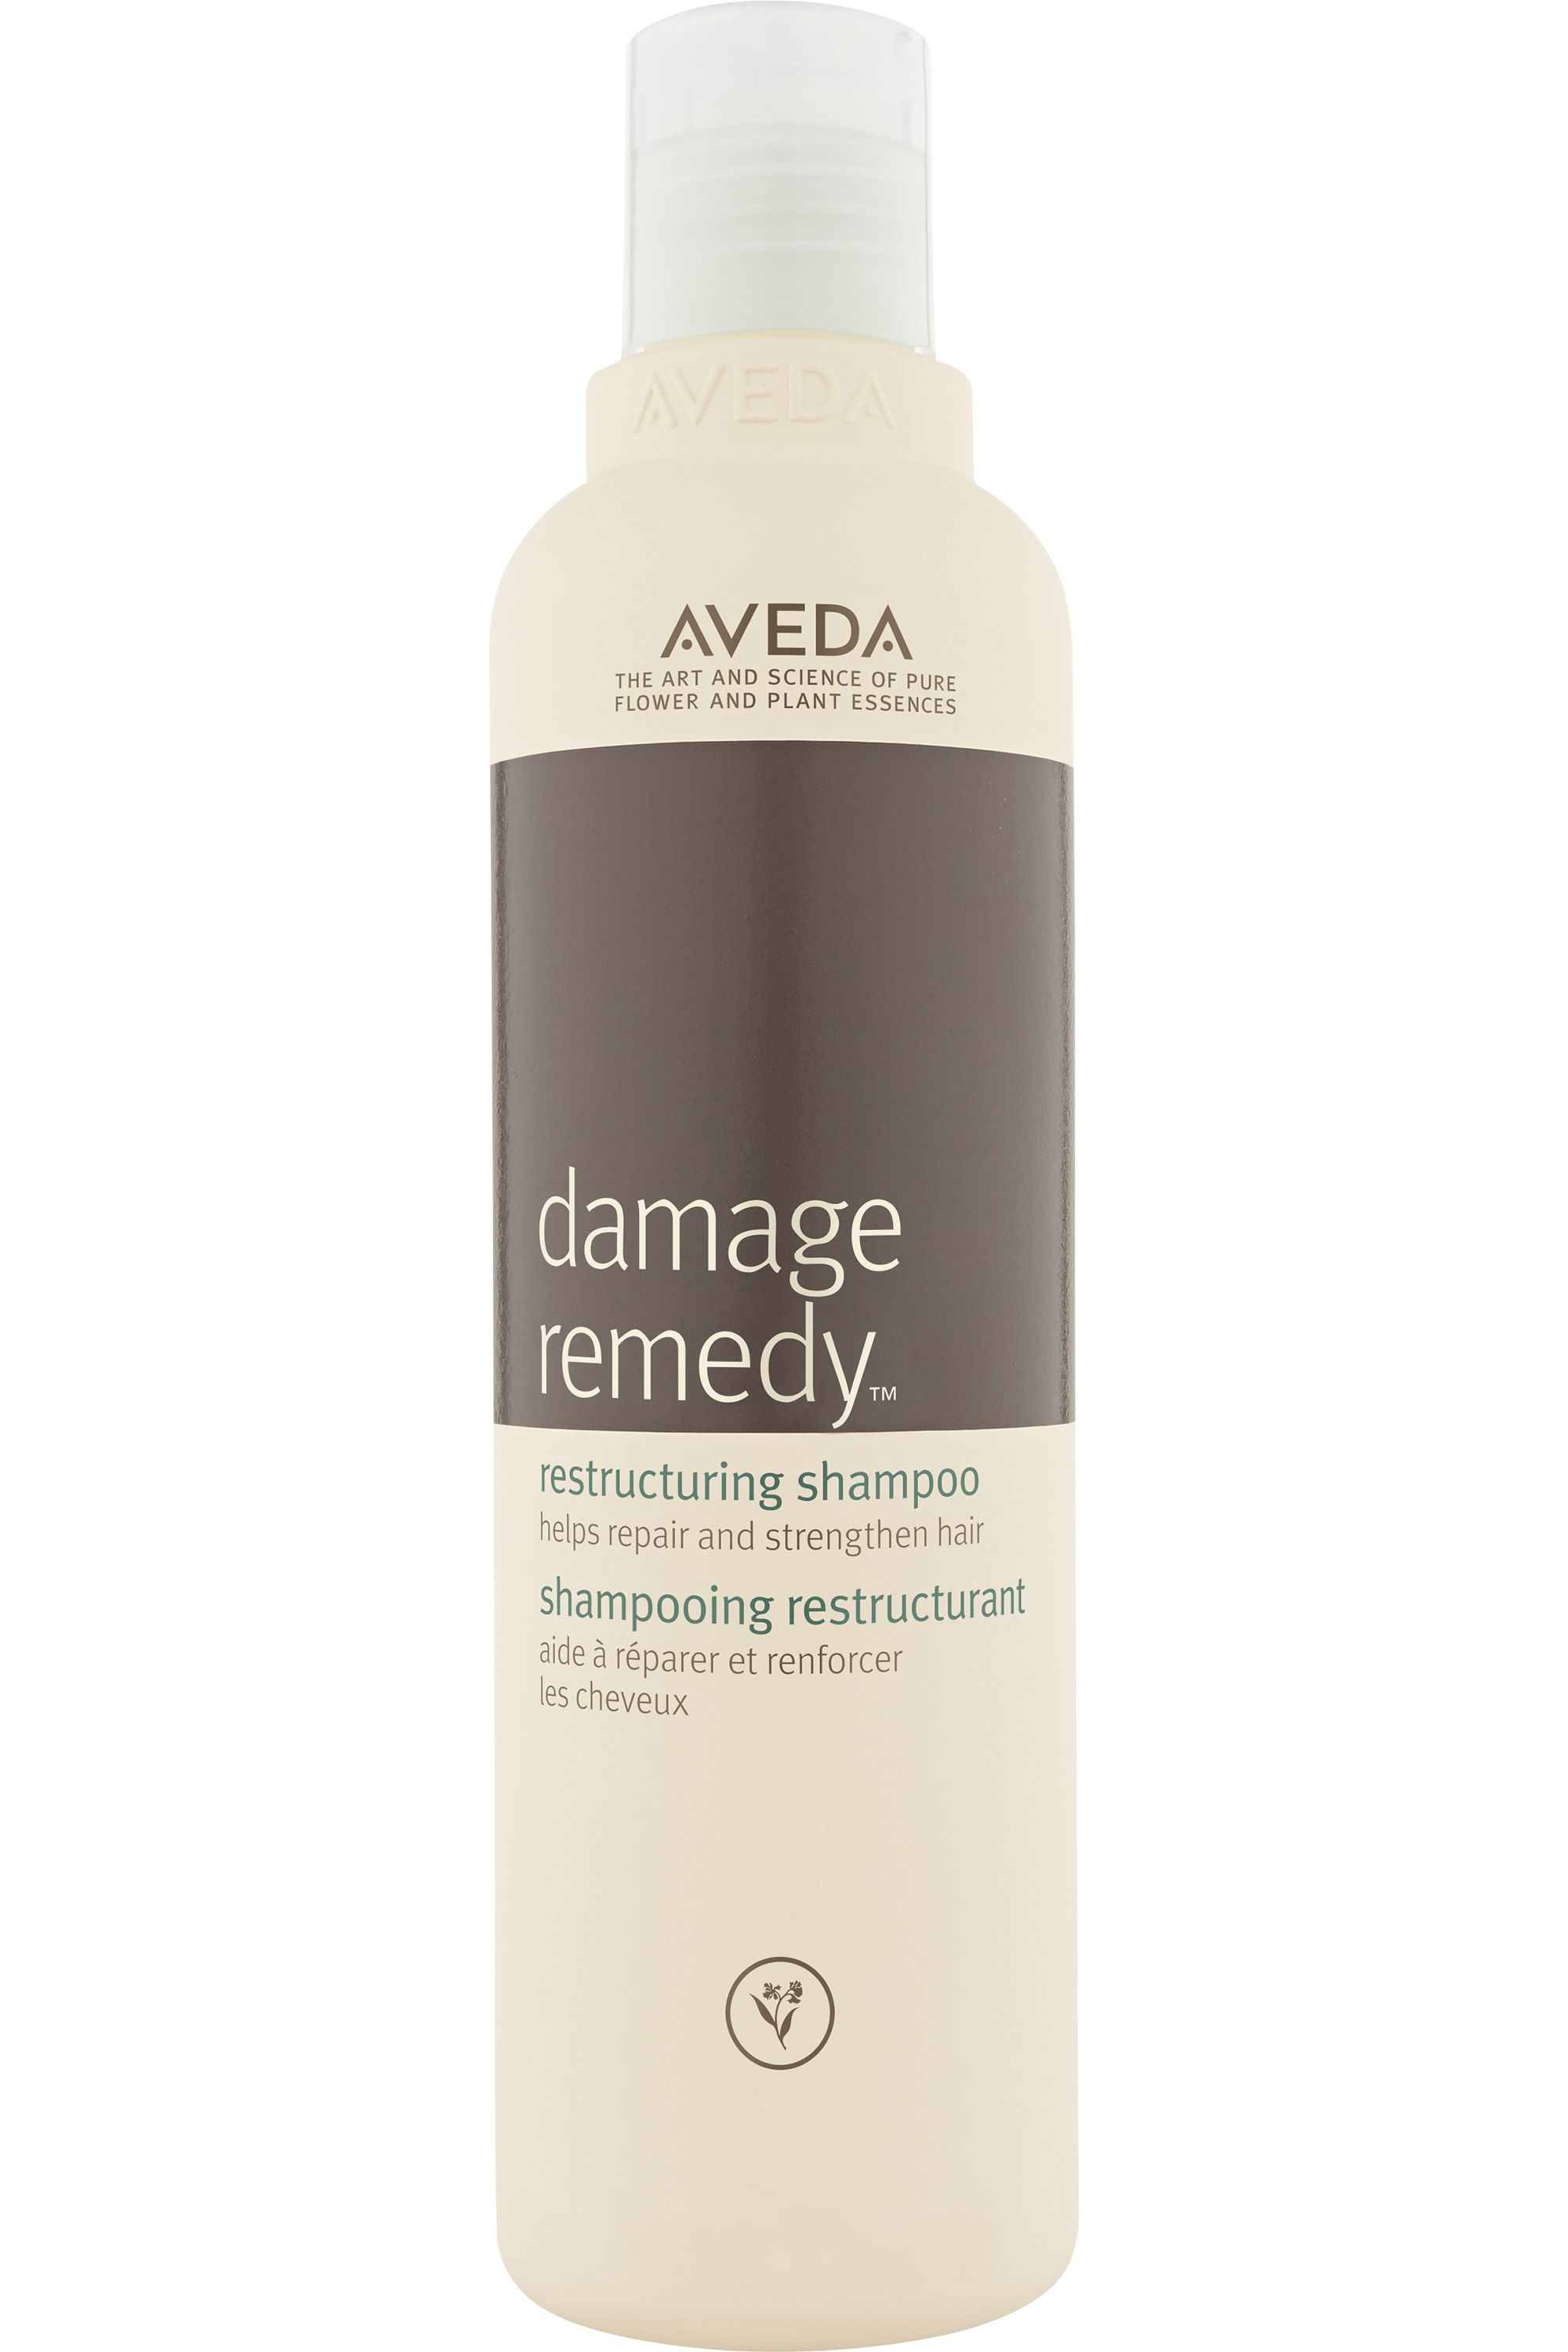 Blissim : Aveda - Shampoing réparateur Damage Remedy ™ - Shampoing réparateur Damage Remedy ™